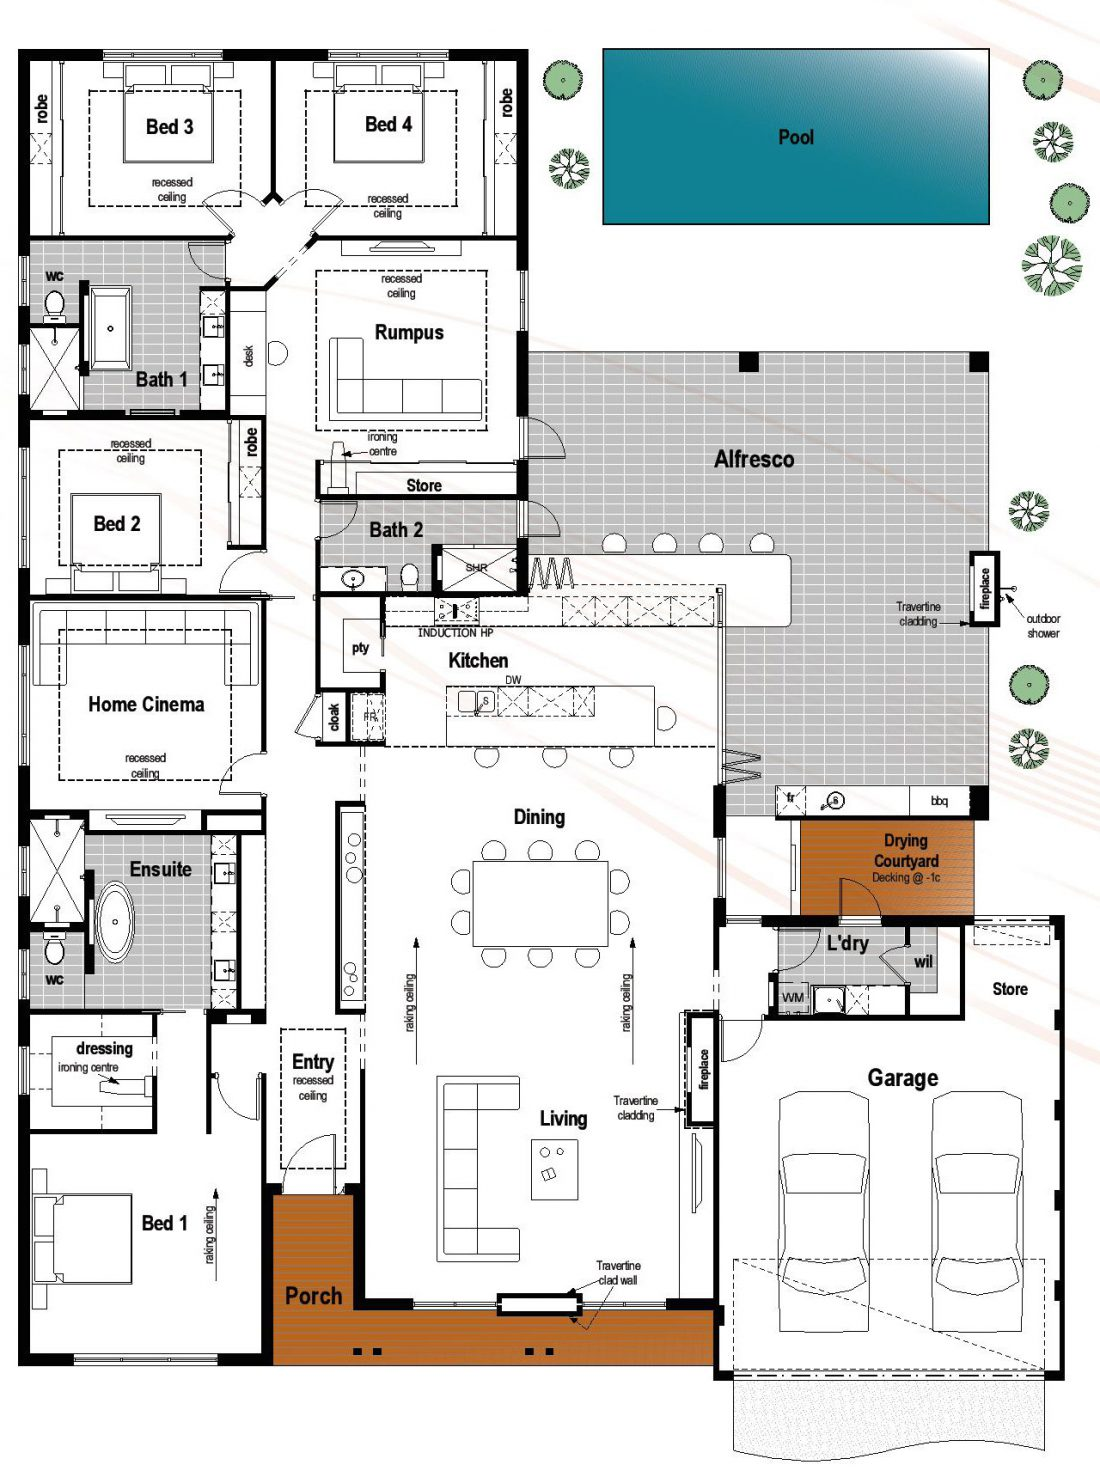 Floor plan friday 4 bedroom 3 bathroom with modern for Home design layout plan